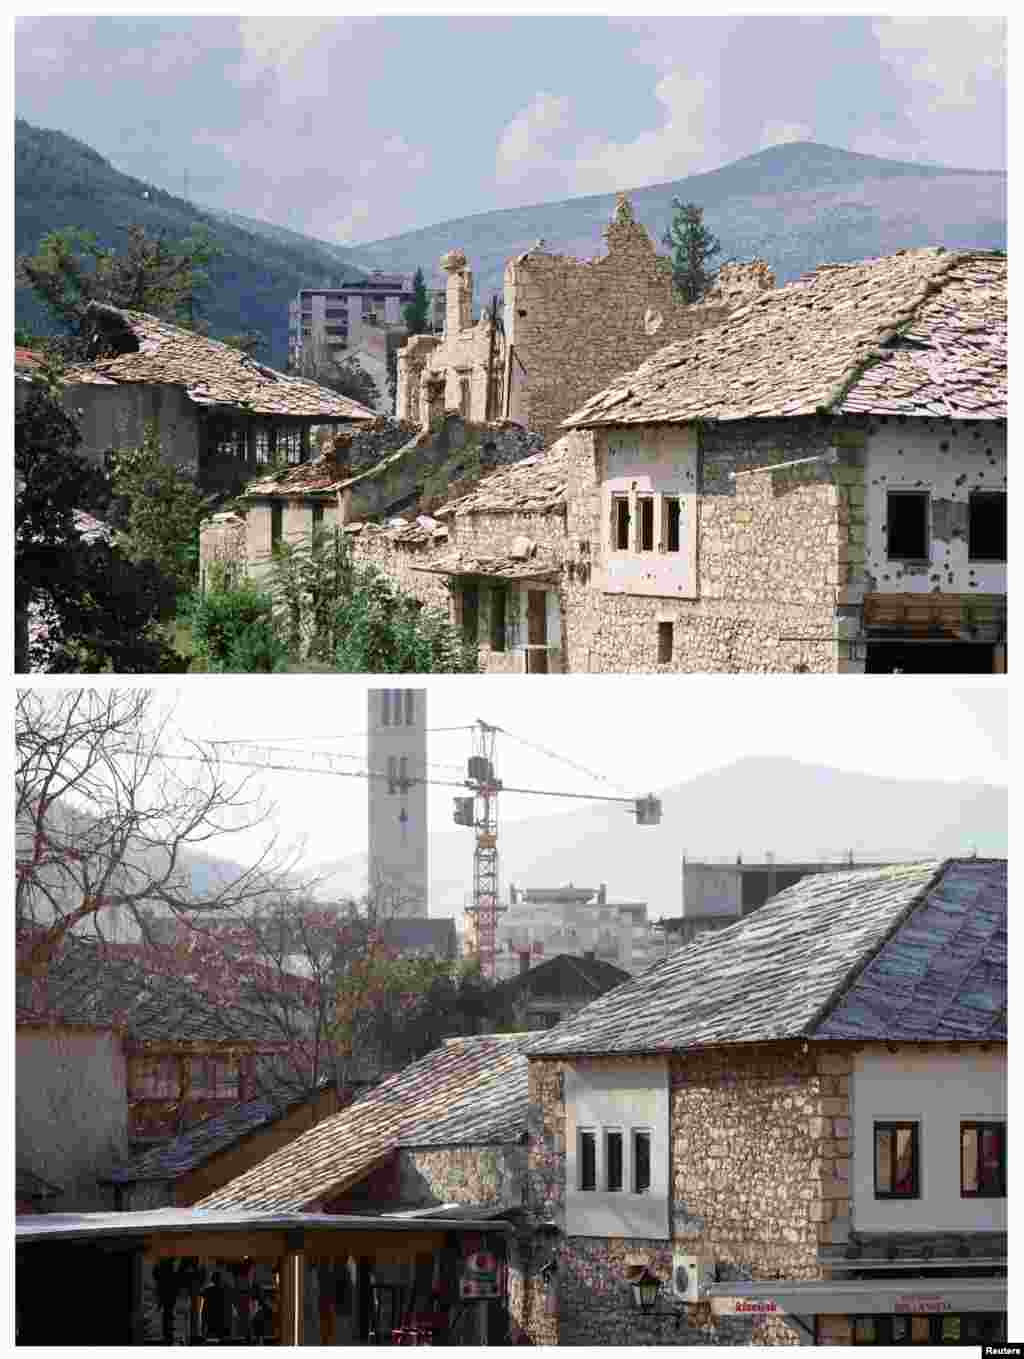 Damaged buildings in the old part of Mostar in June 1993, and below that the same location on February 23, 2013.